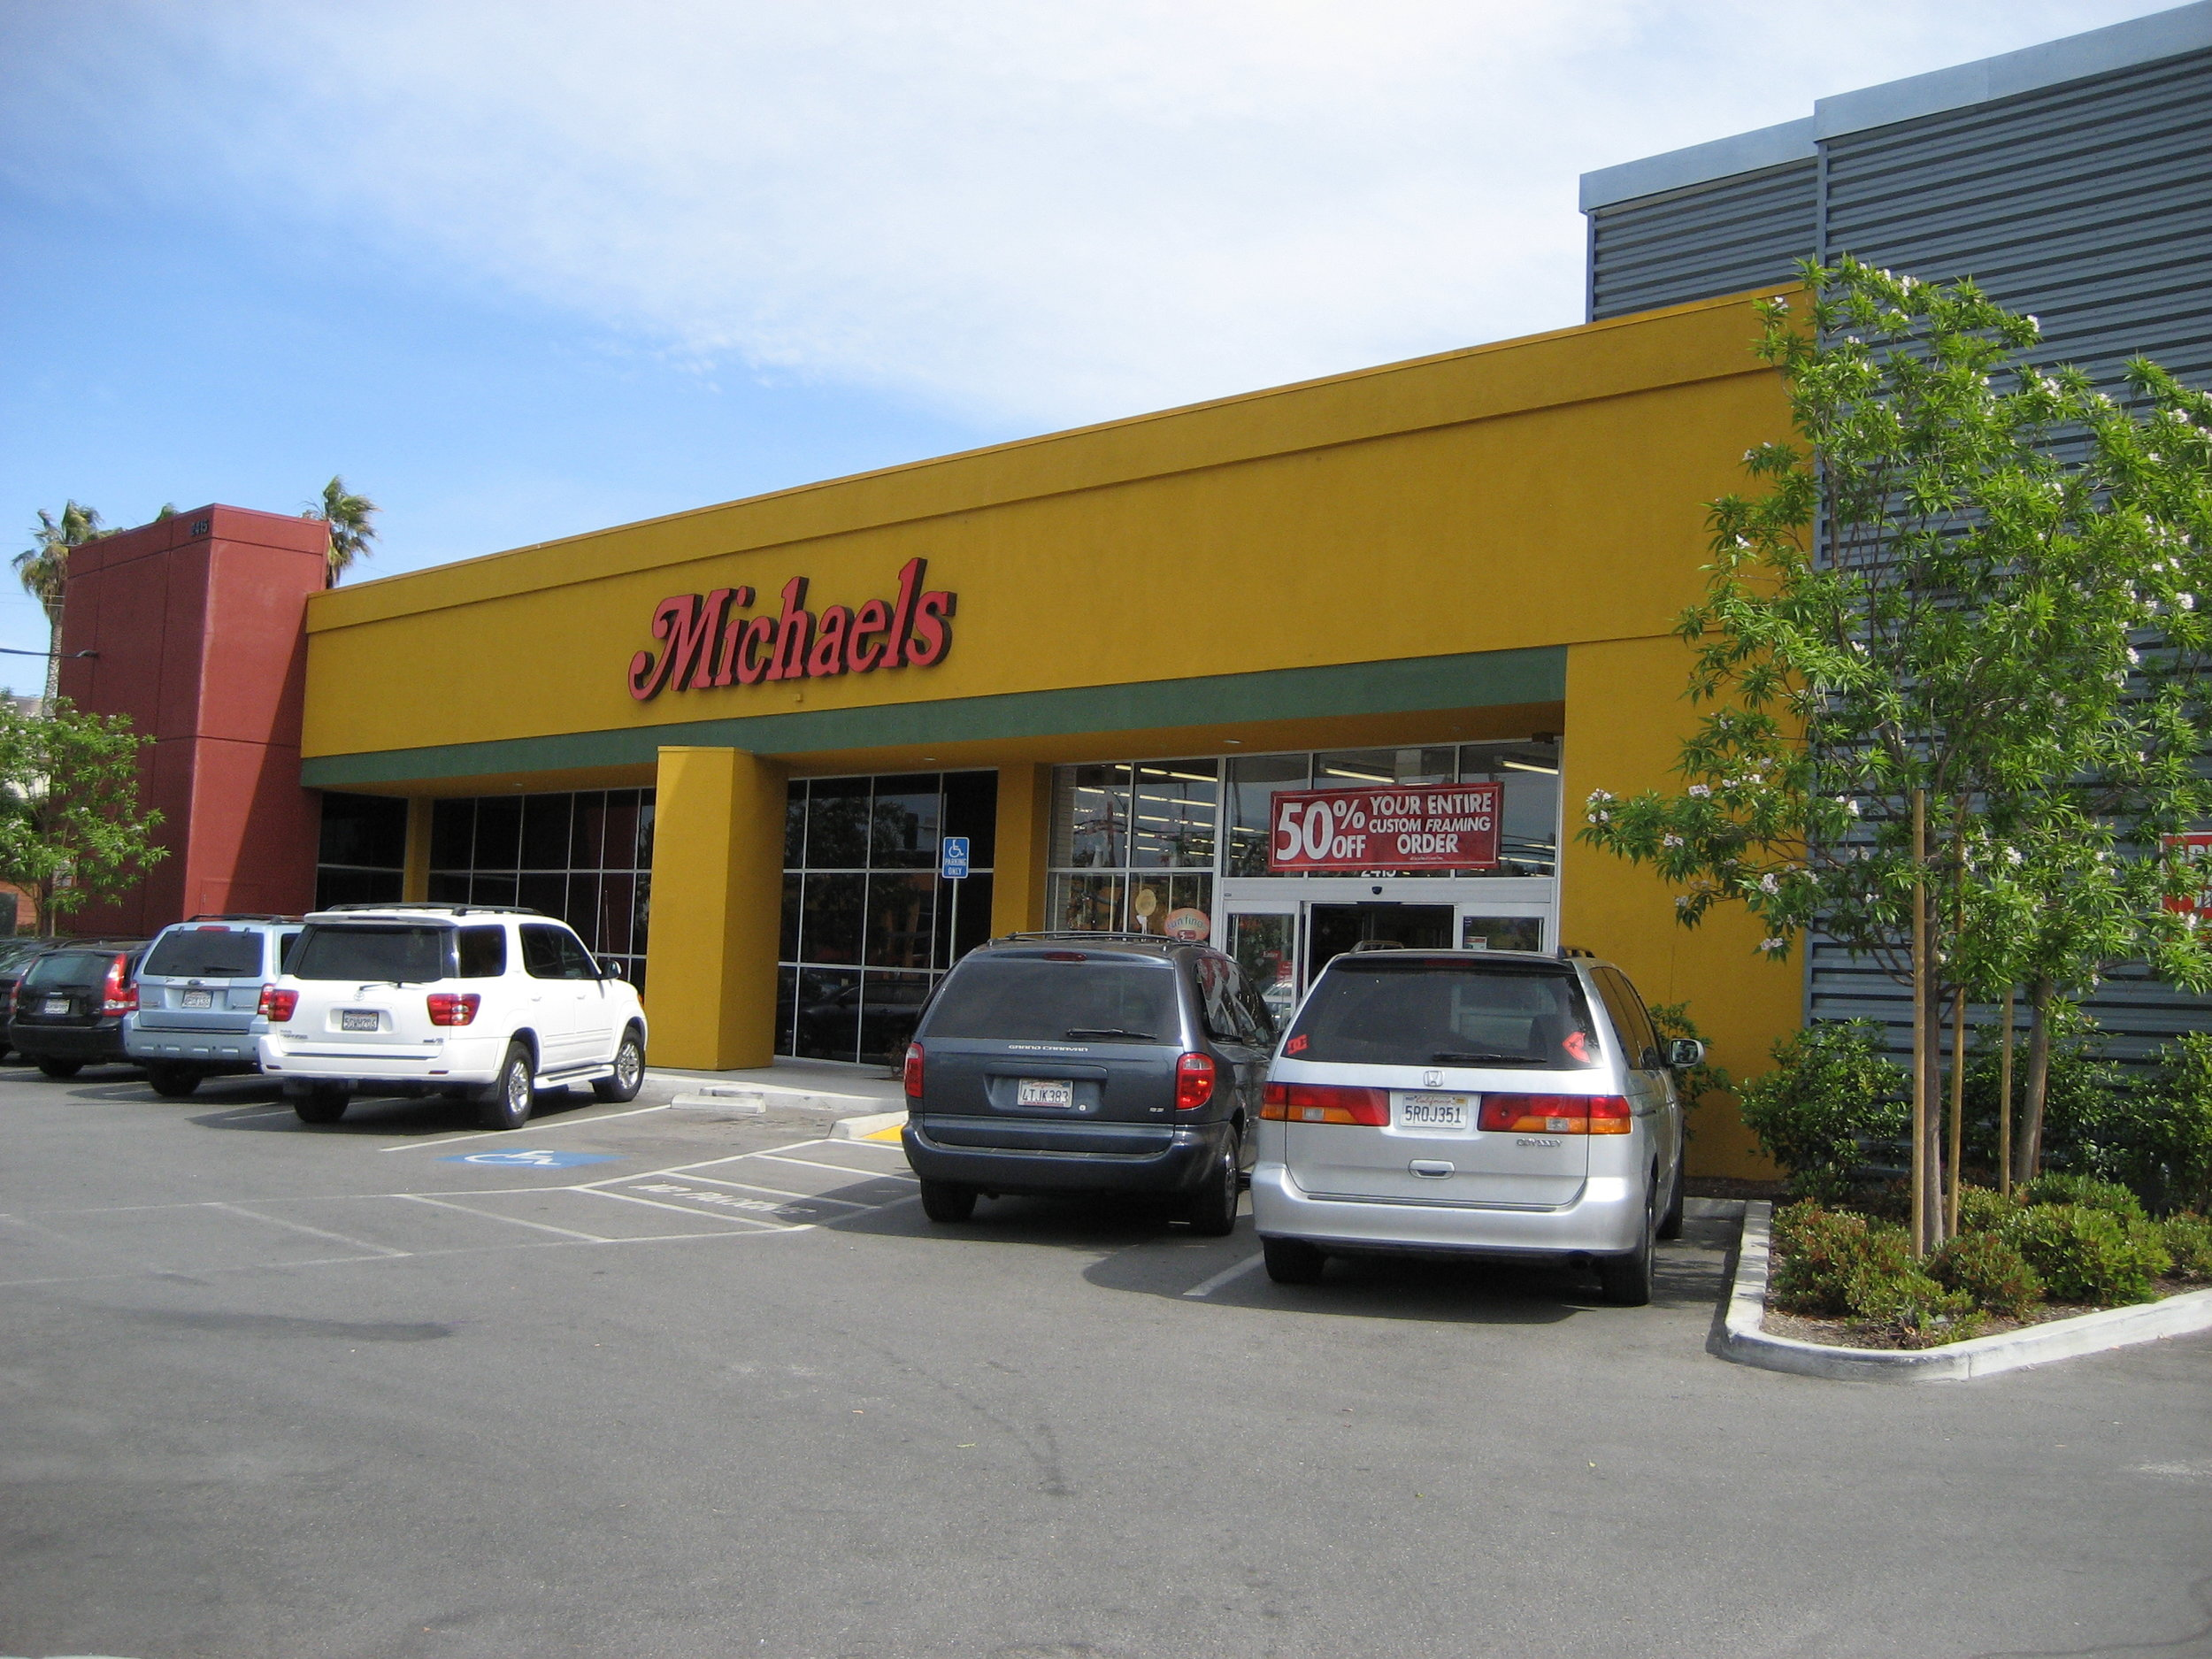 2415 Charleston Road, Mountain View, CA 94043 21,579 SF STNL Michaels Stores, Inc. $6,915,000